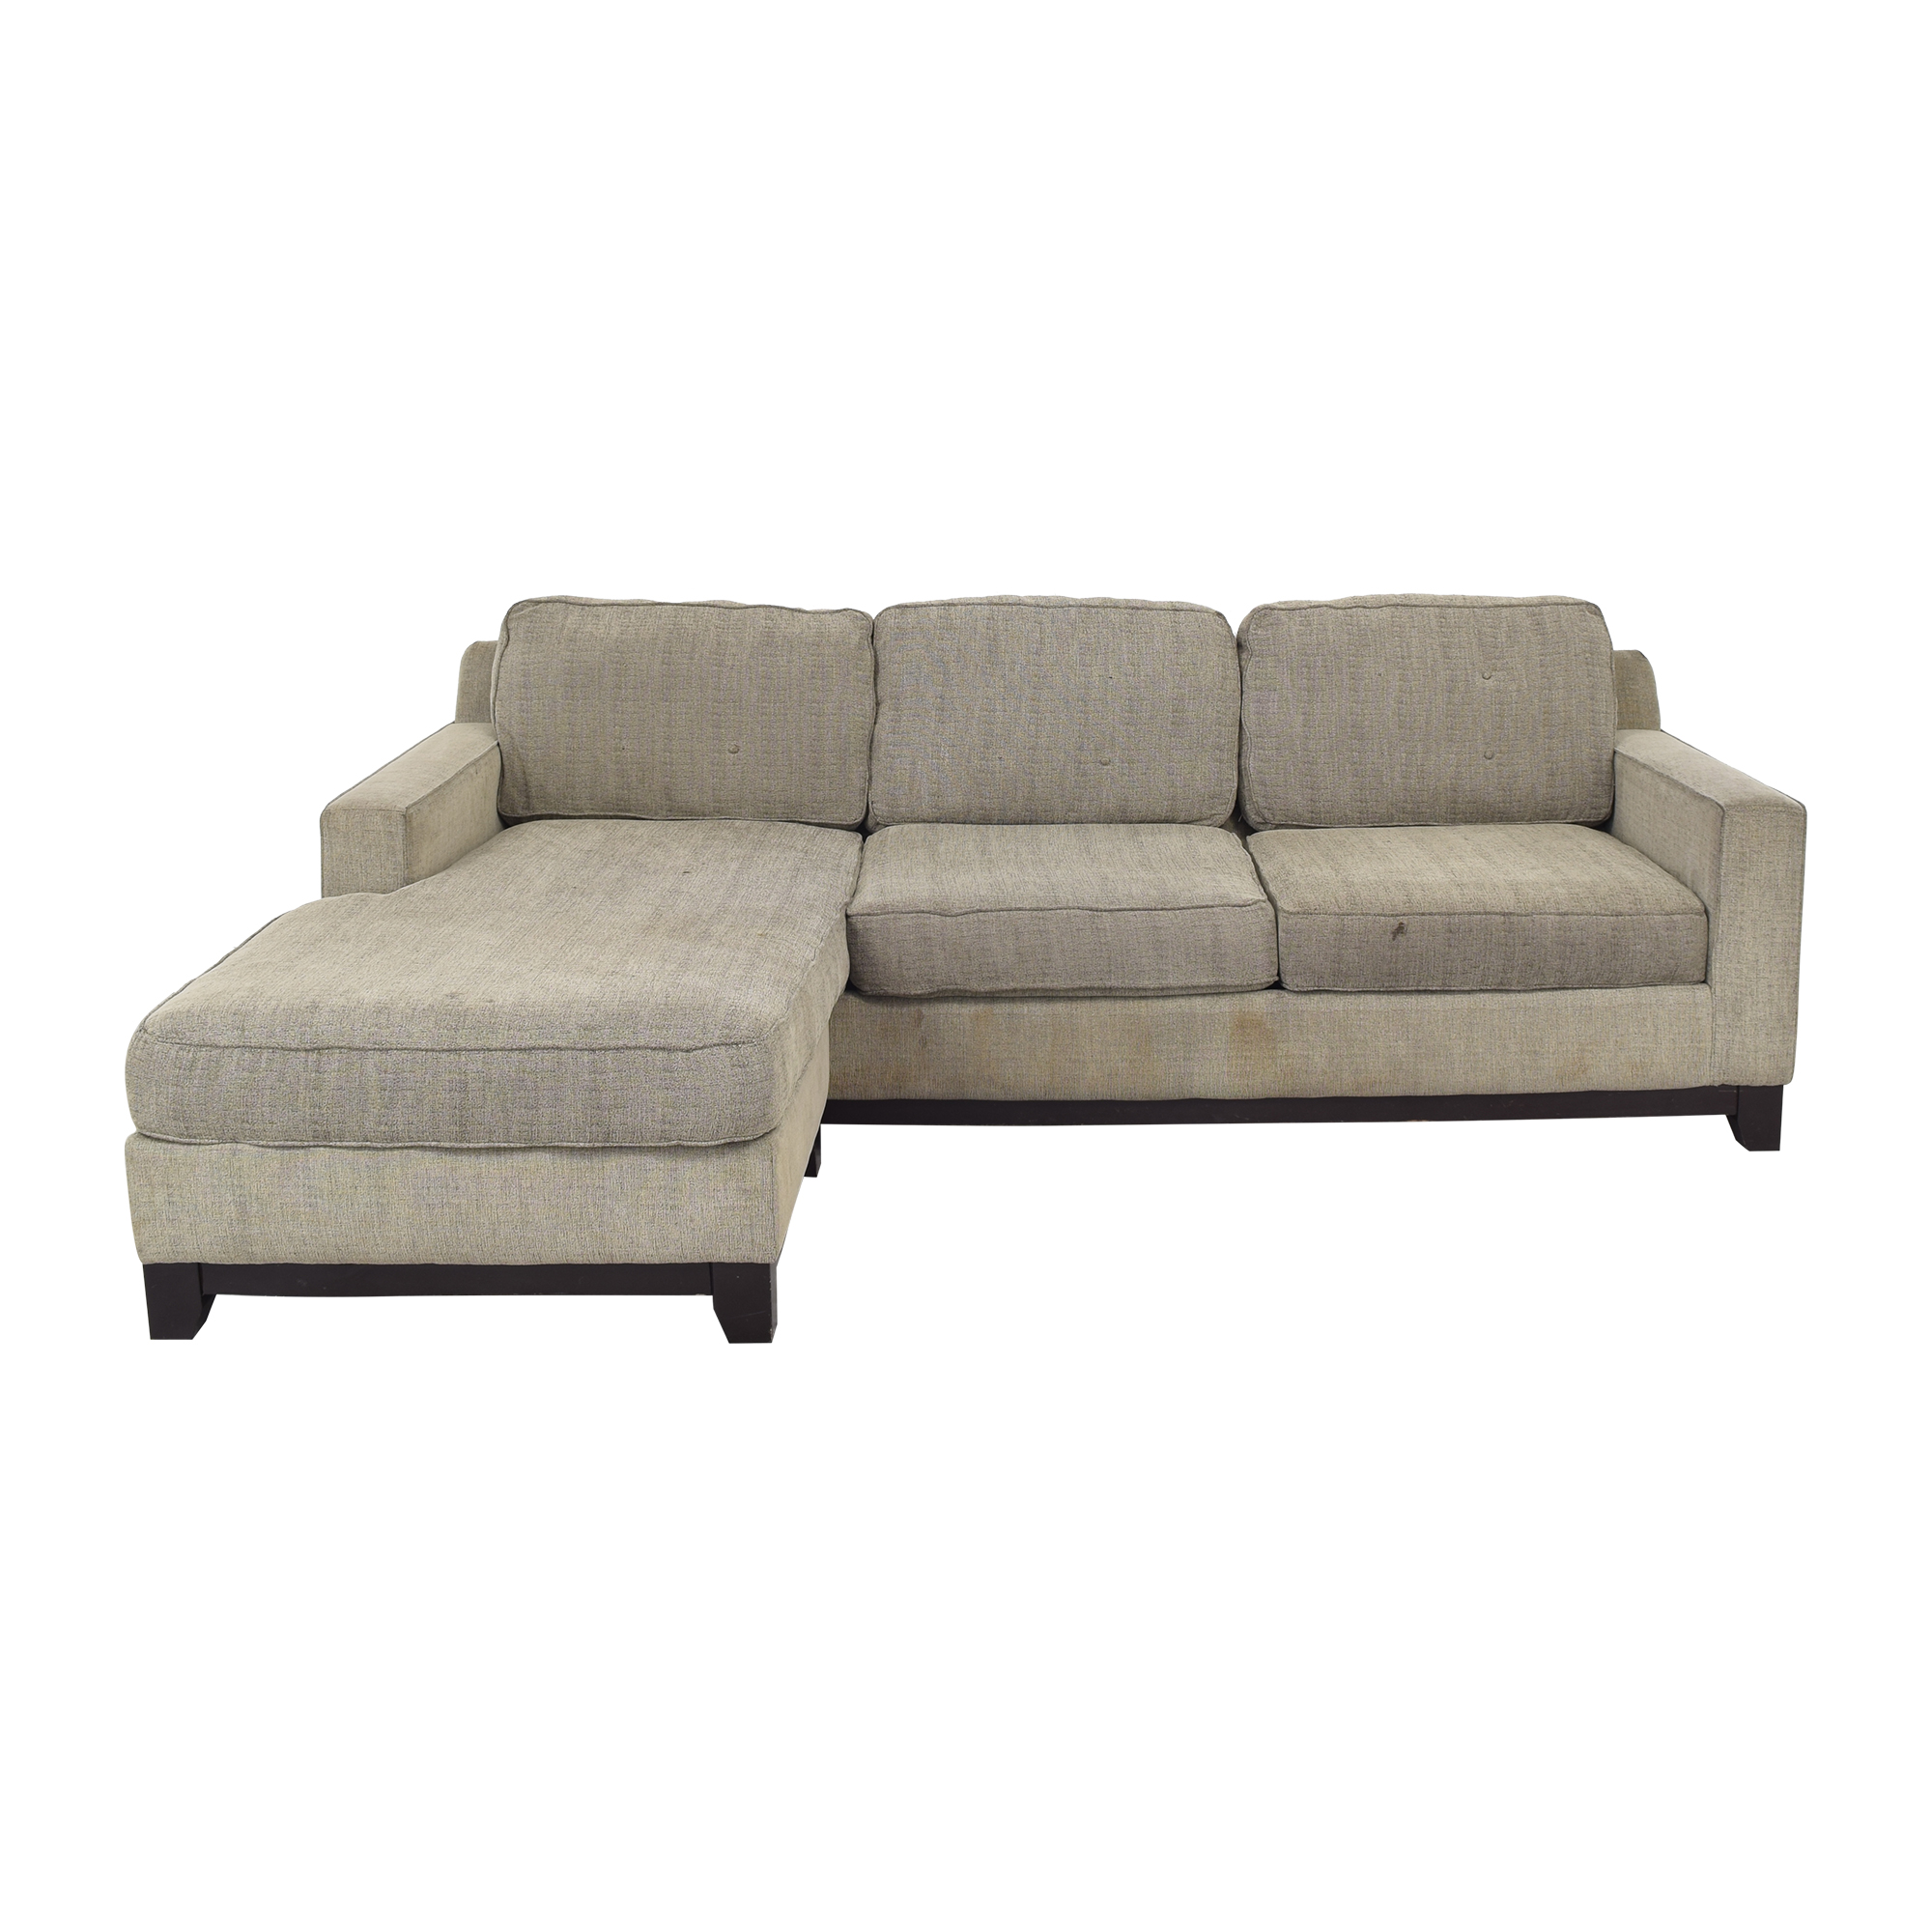 buy Jonathan Louis Chaise Sectional Sofa Macy's Sofas